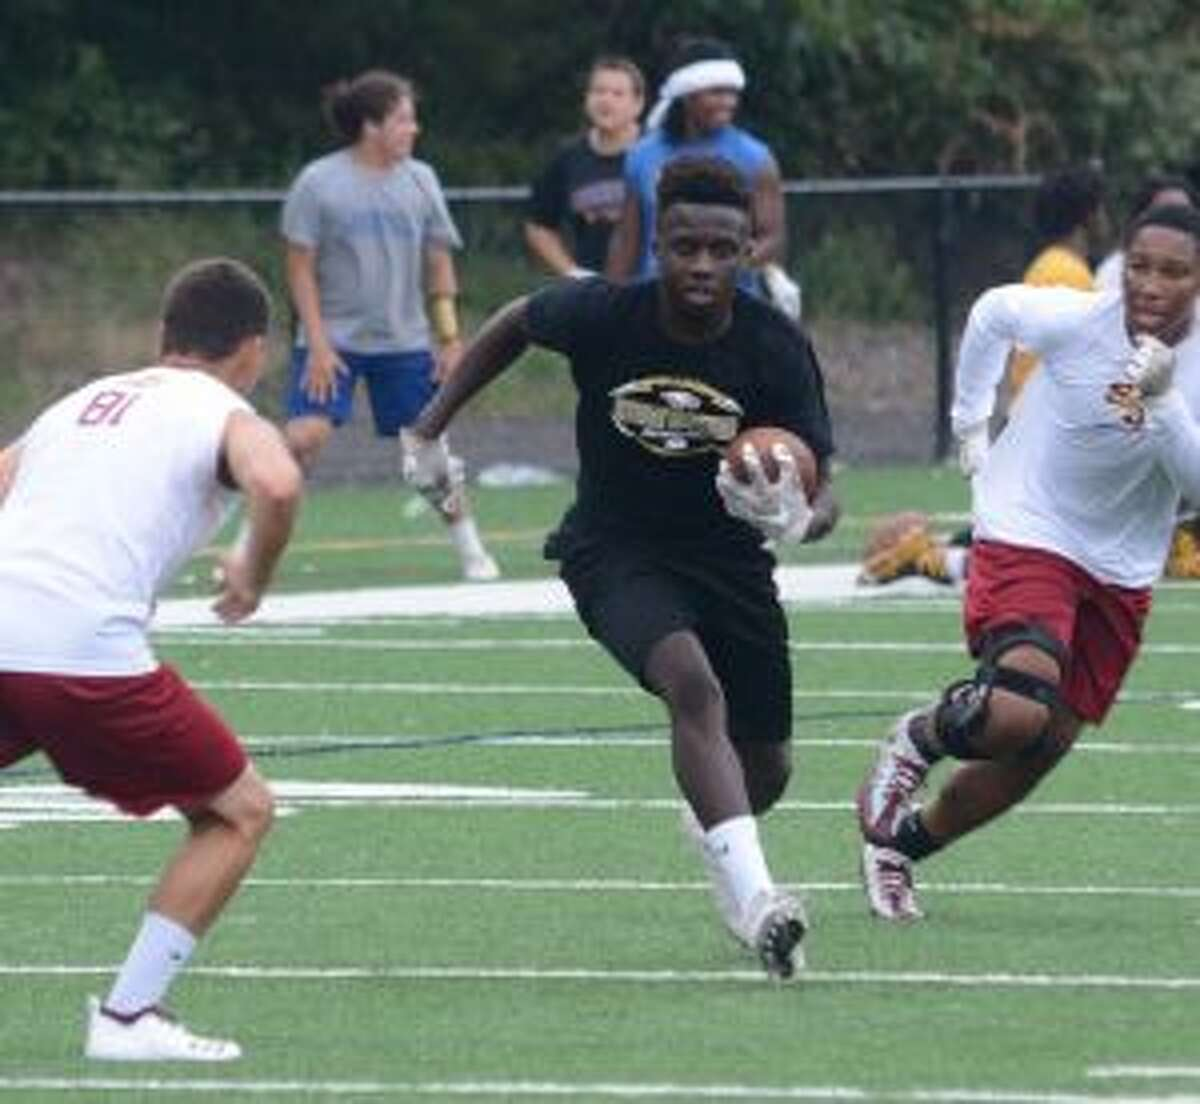 Trumbull High's Reggie Robinson looks for room to run in a 7-on-7 meeting with St. Joseph. - Andy Hutchison photo